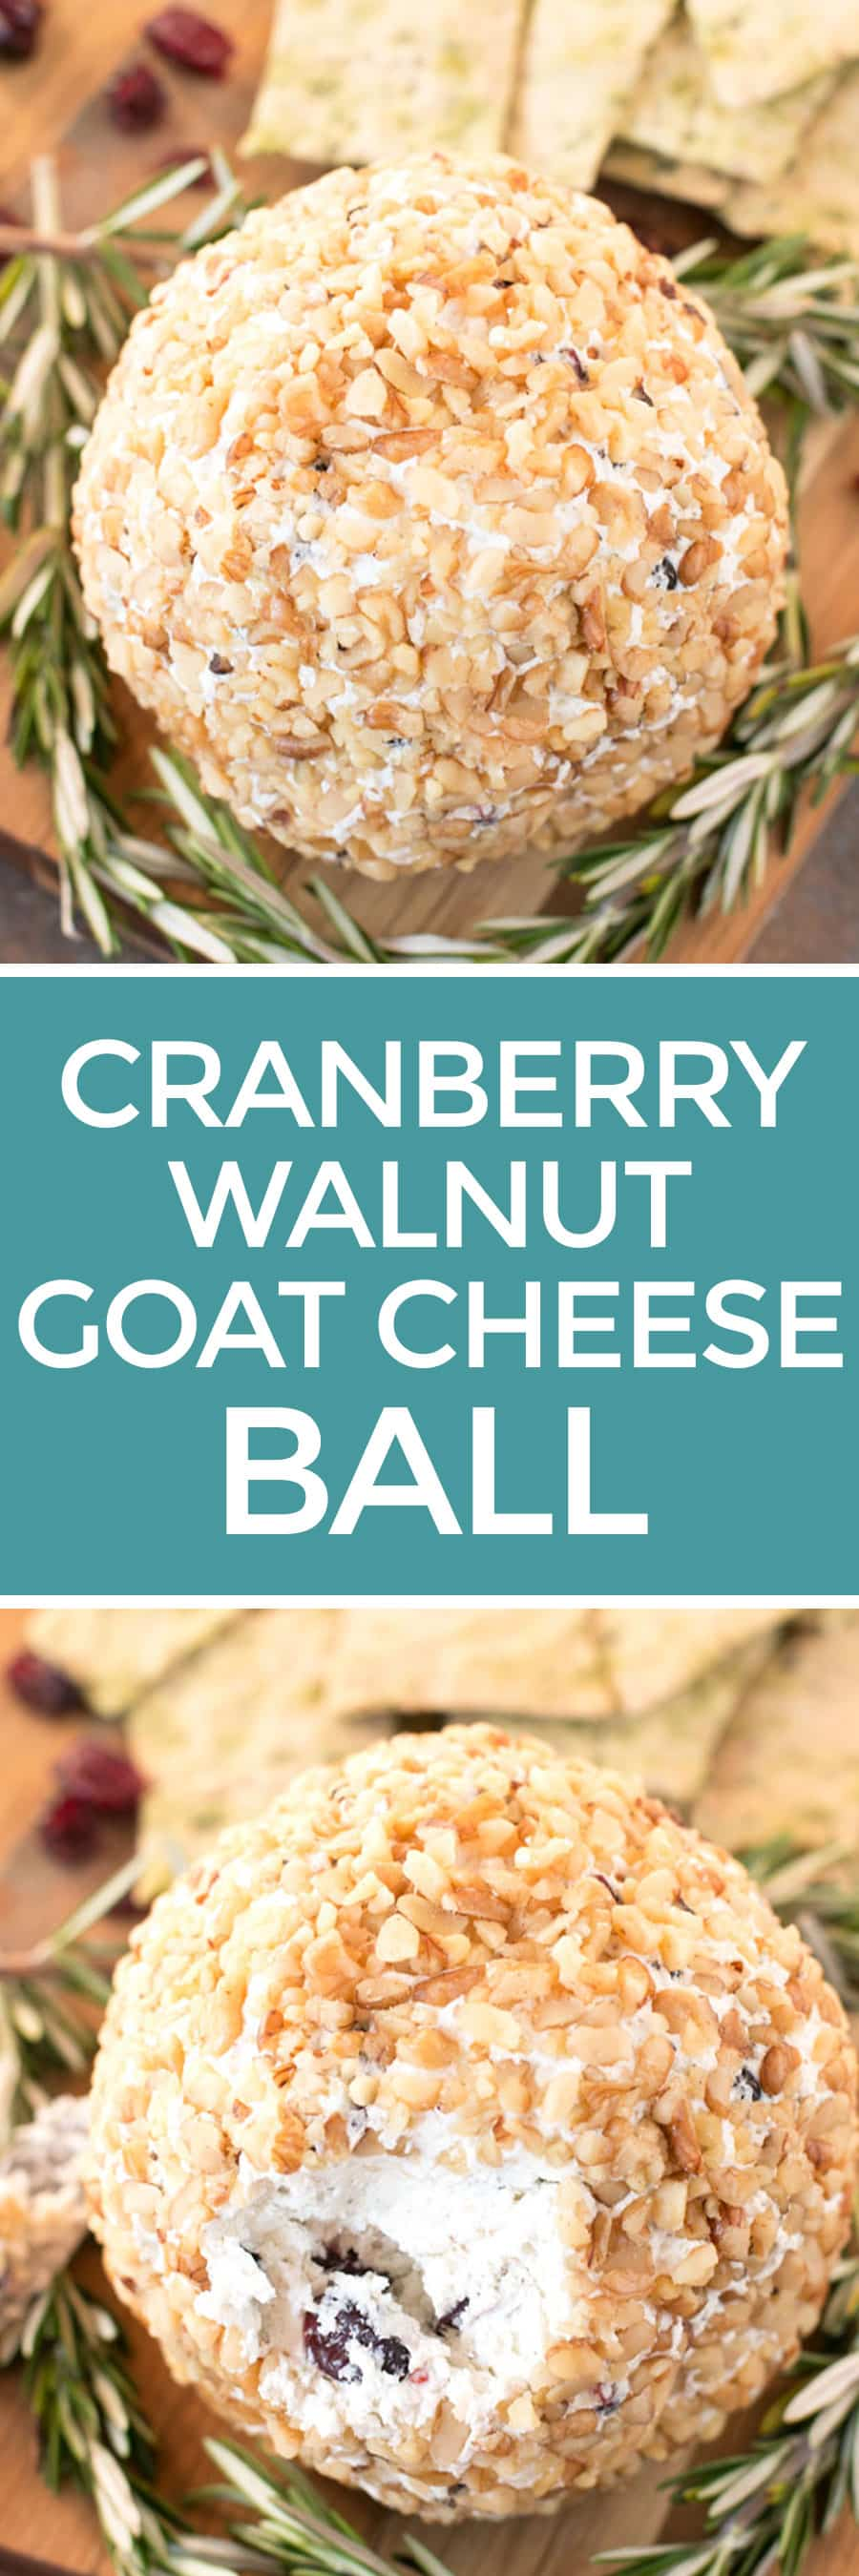 Cranberry Walnut Goat Cheese Ball | cakenknife.com